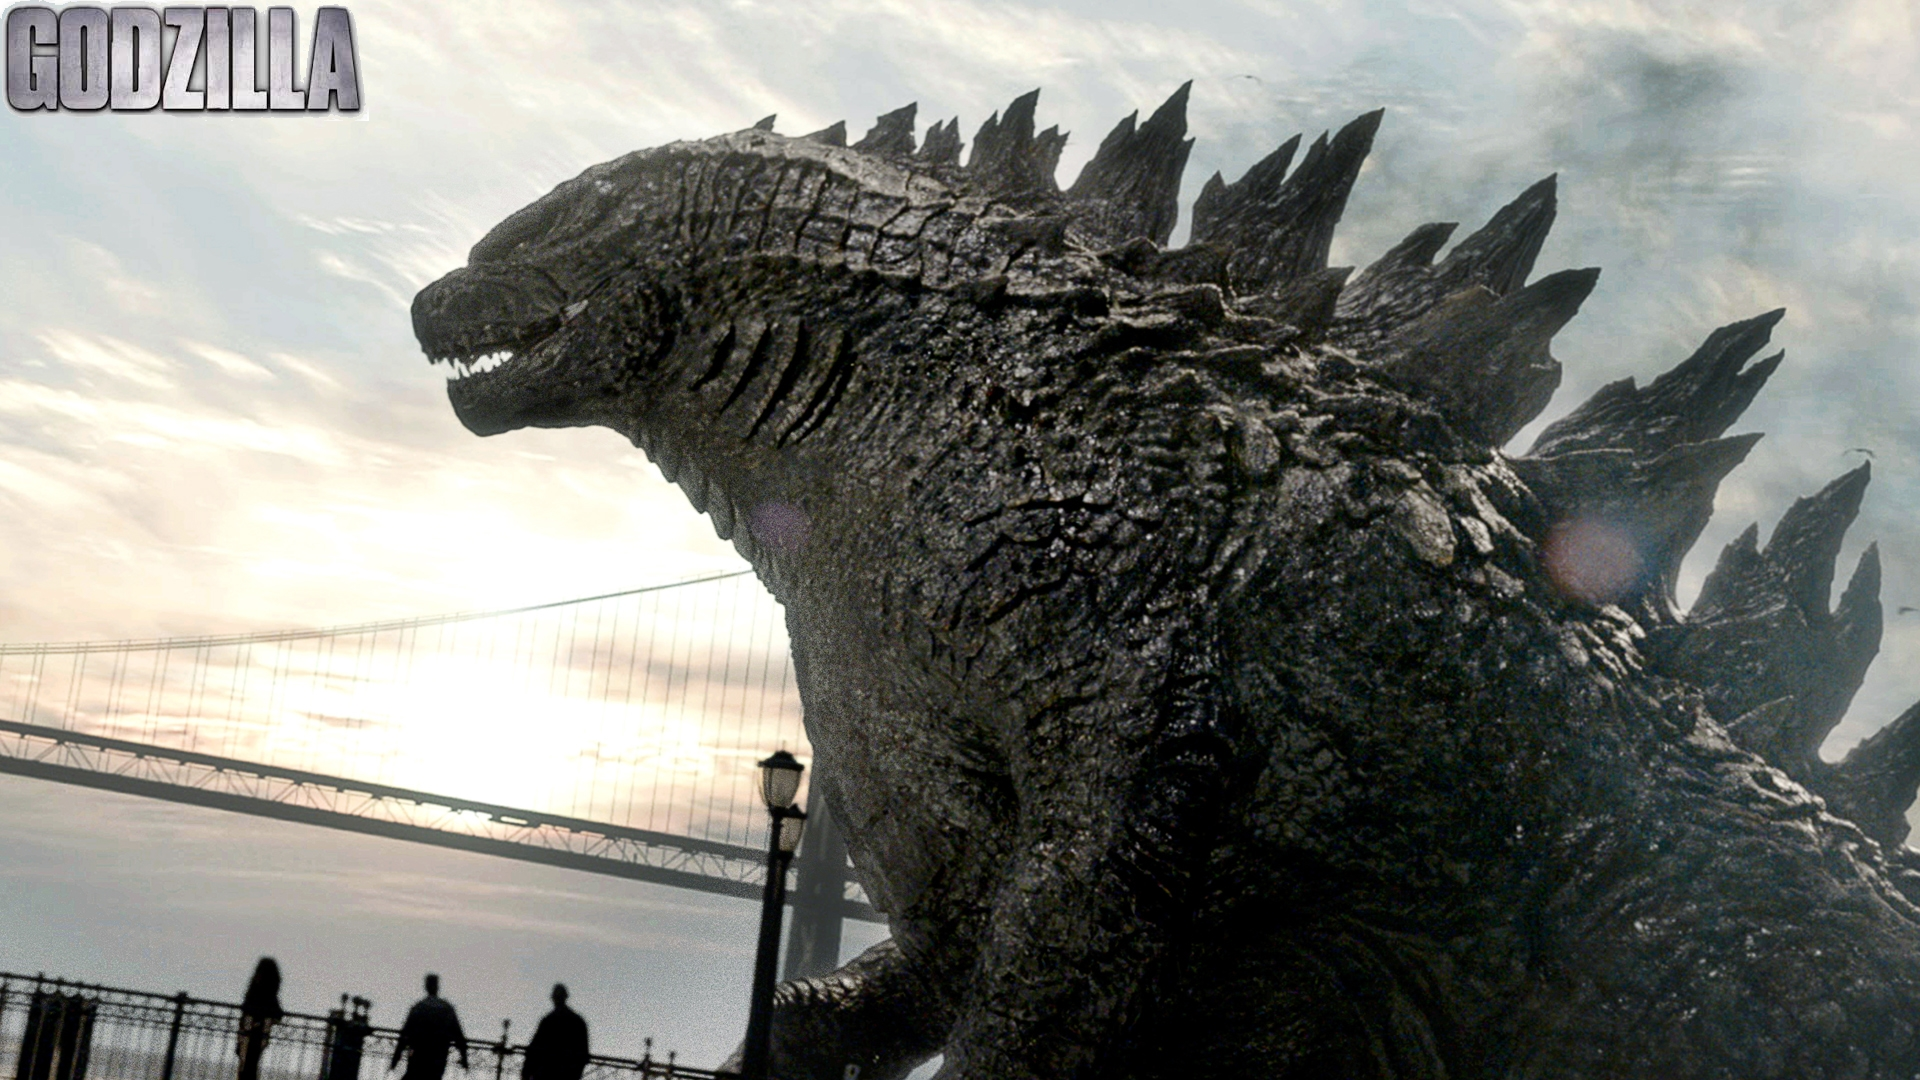 Comic-Con: King Kong Movie 'Skull Island' and 'Godzilla 2' Announced